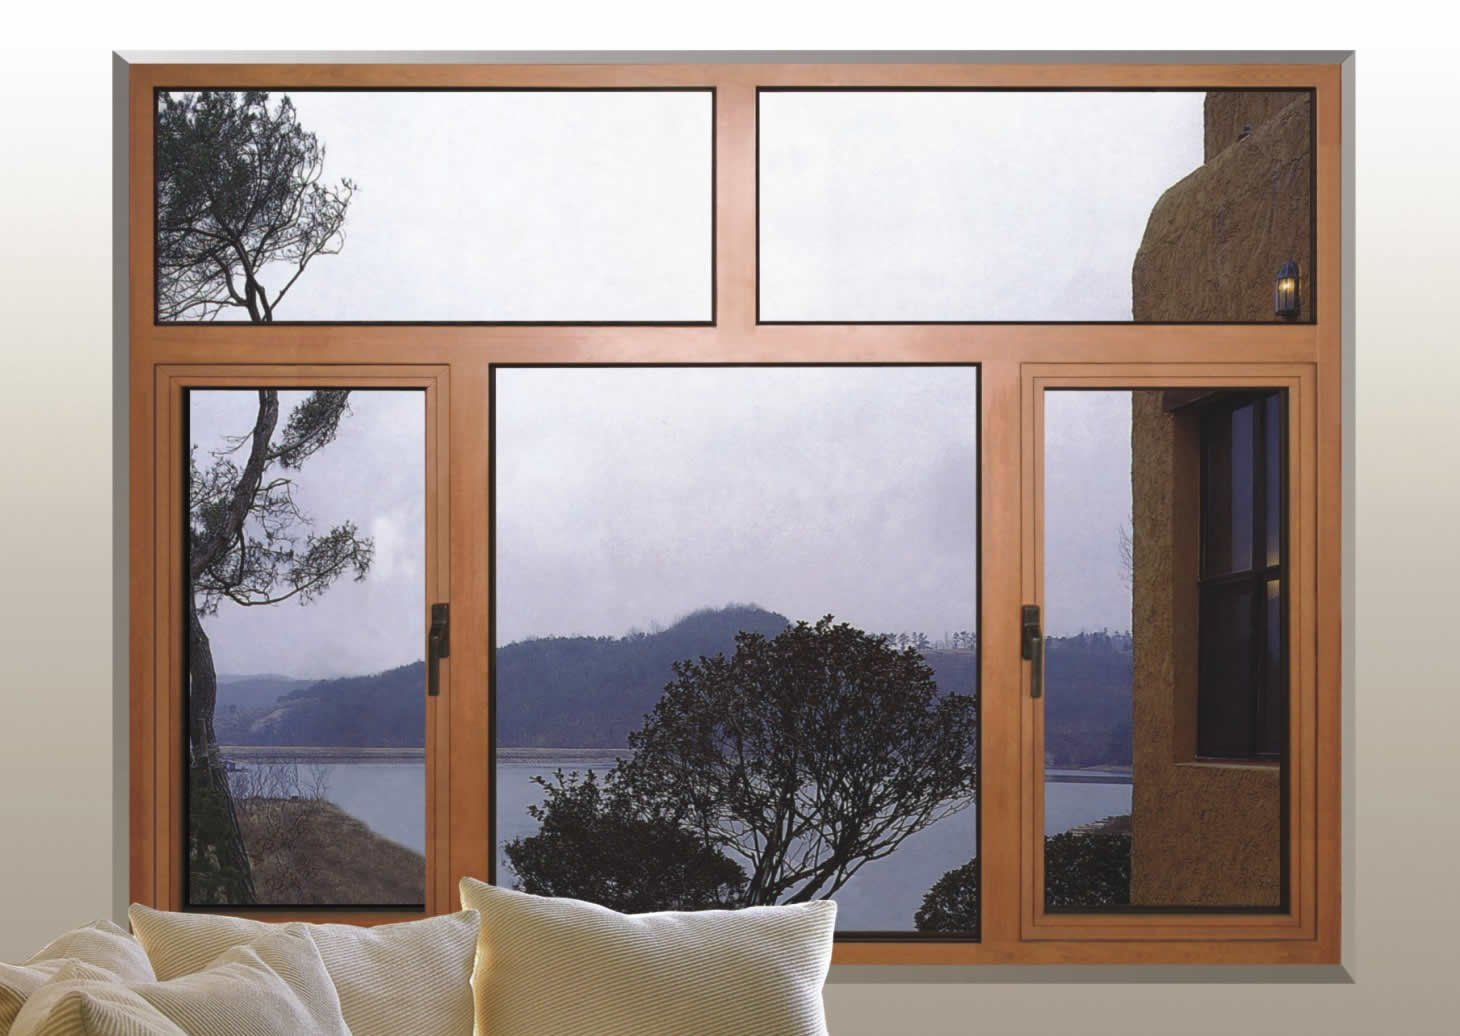 Modern house window design - Window Design Interior Fleut Com